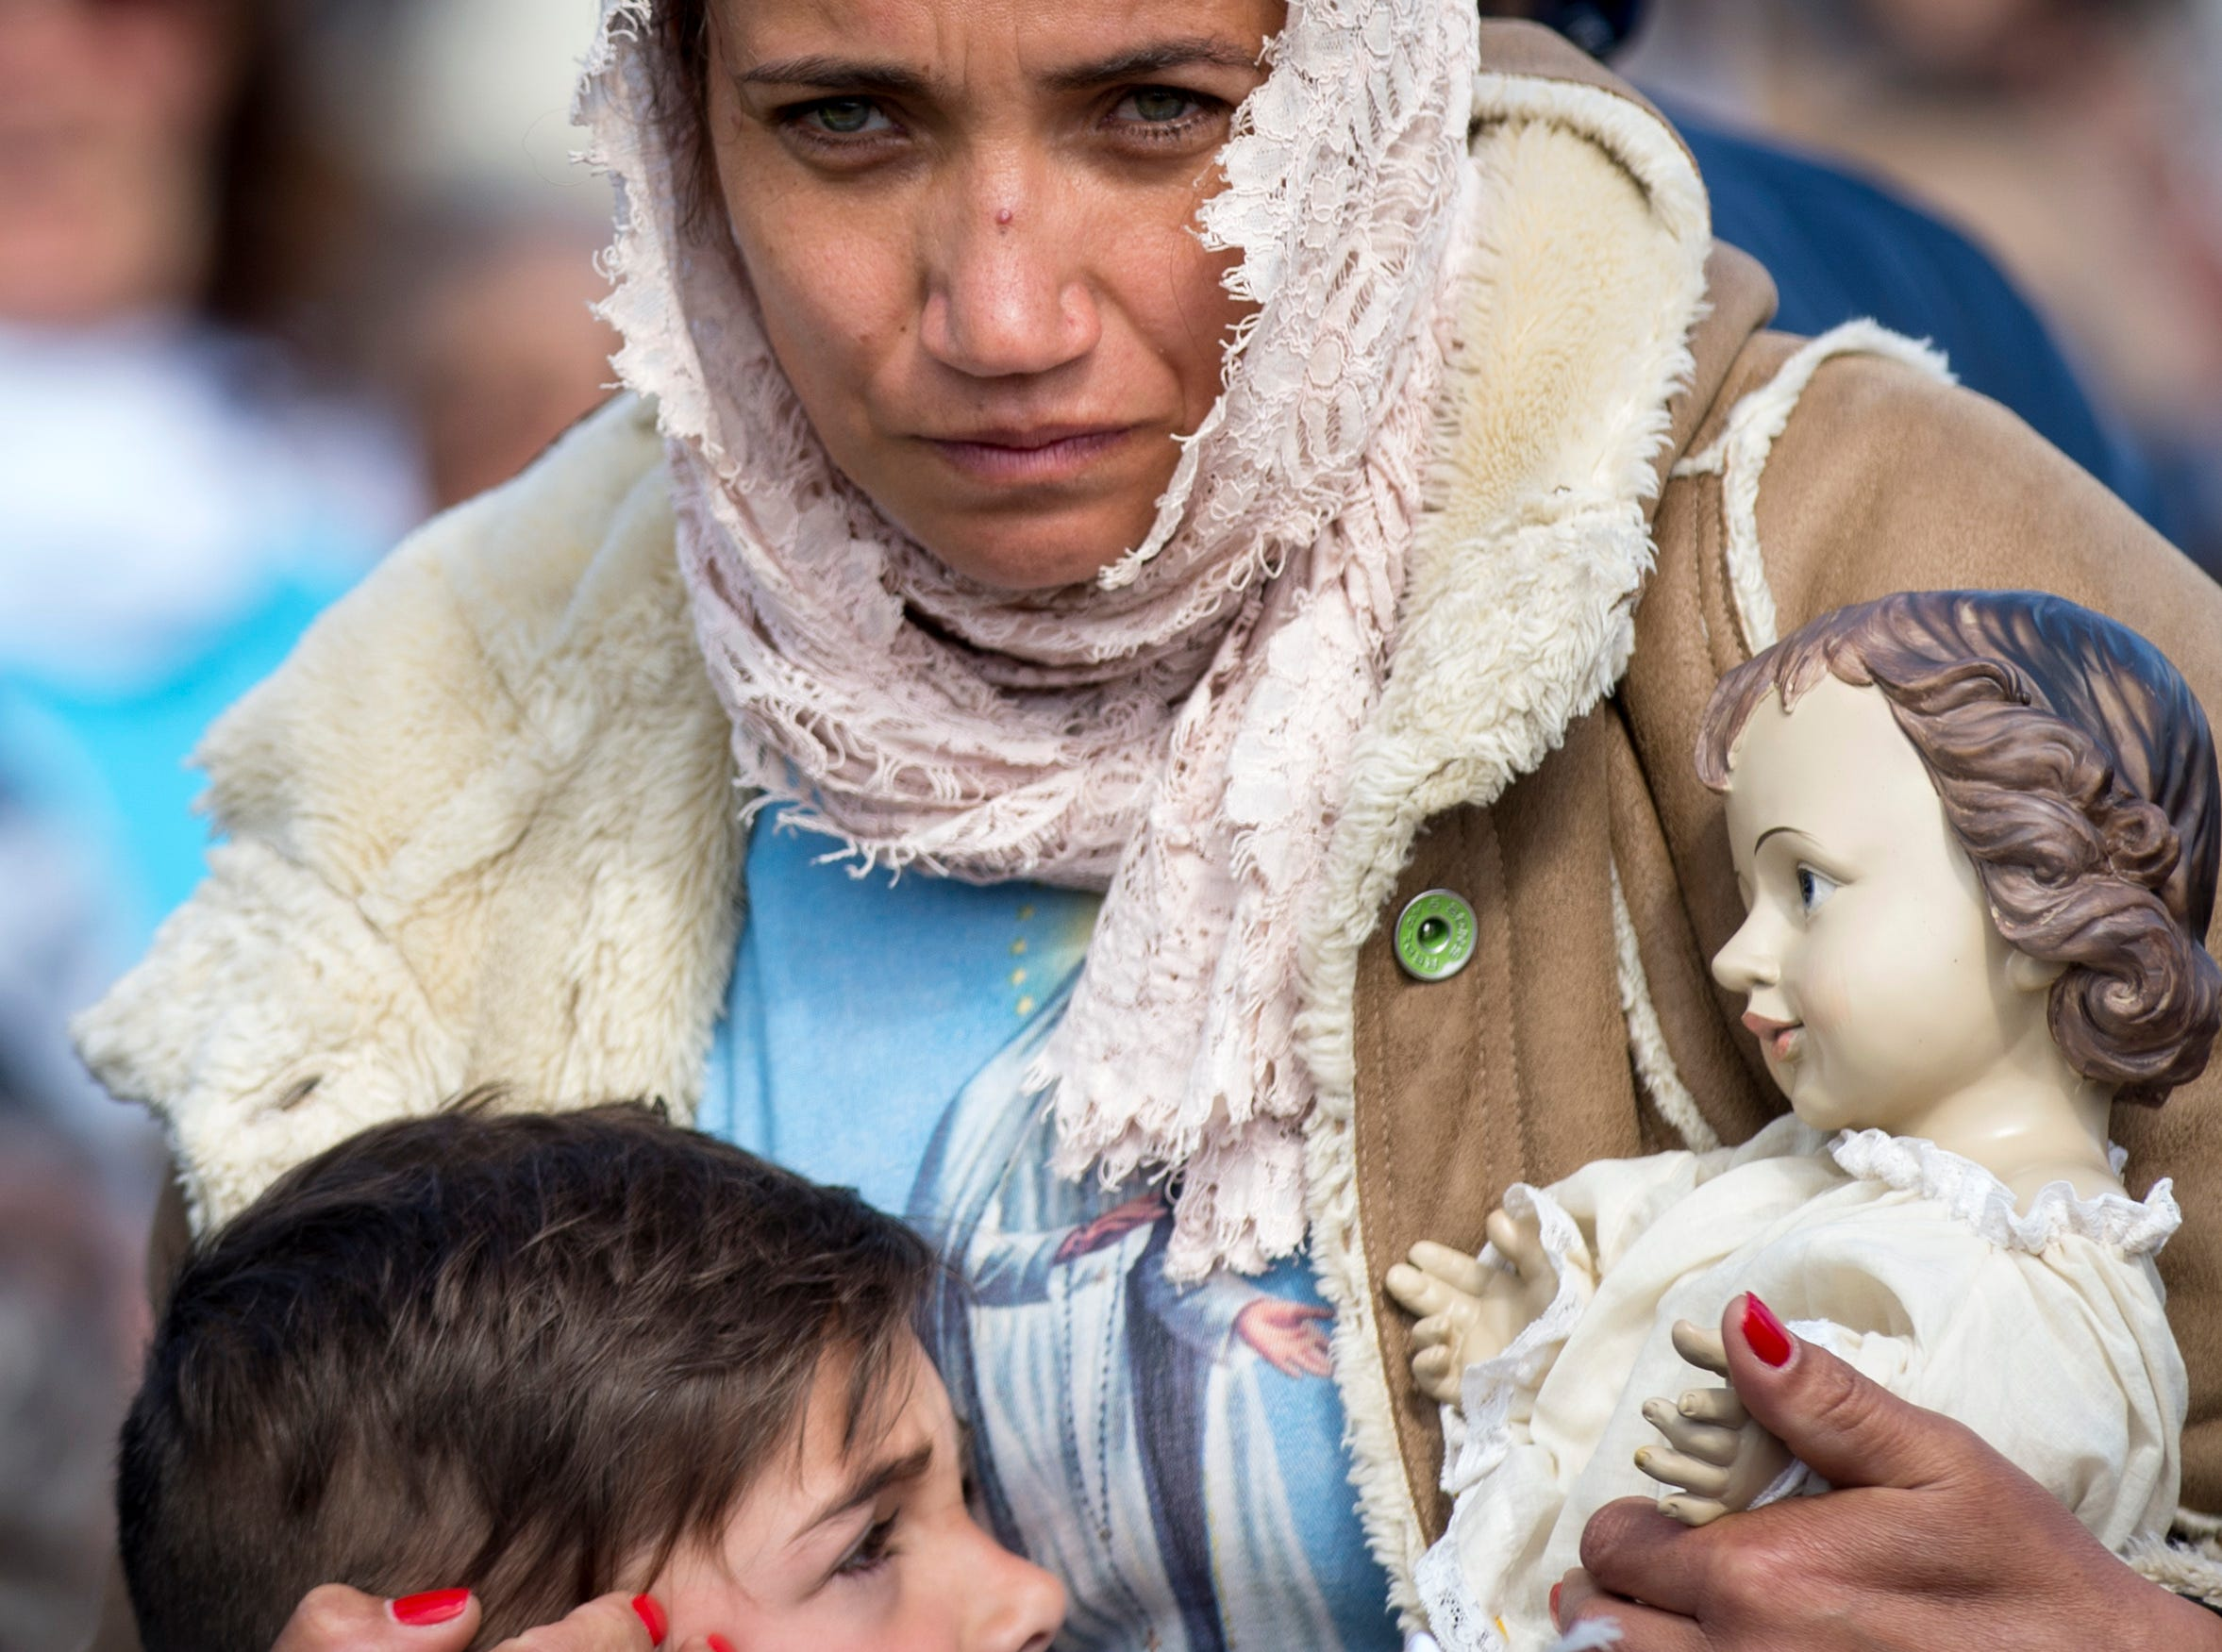 May 13, 2018: A woman and her child attend a mass ceremony at the Fatima shrine in Fatima, central Portugal. Thousands of pilgrims converged on the Fatima Sanctuary to celebrate the anniversary of Fatima's miracle when three shepherd children claimed to have seen the Virgin Mary in May 1917.